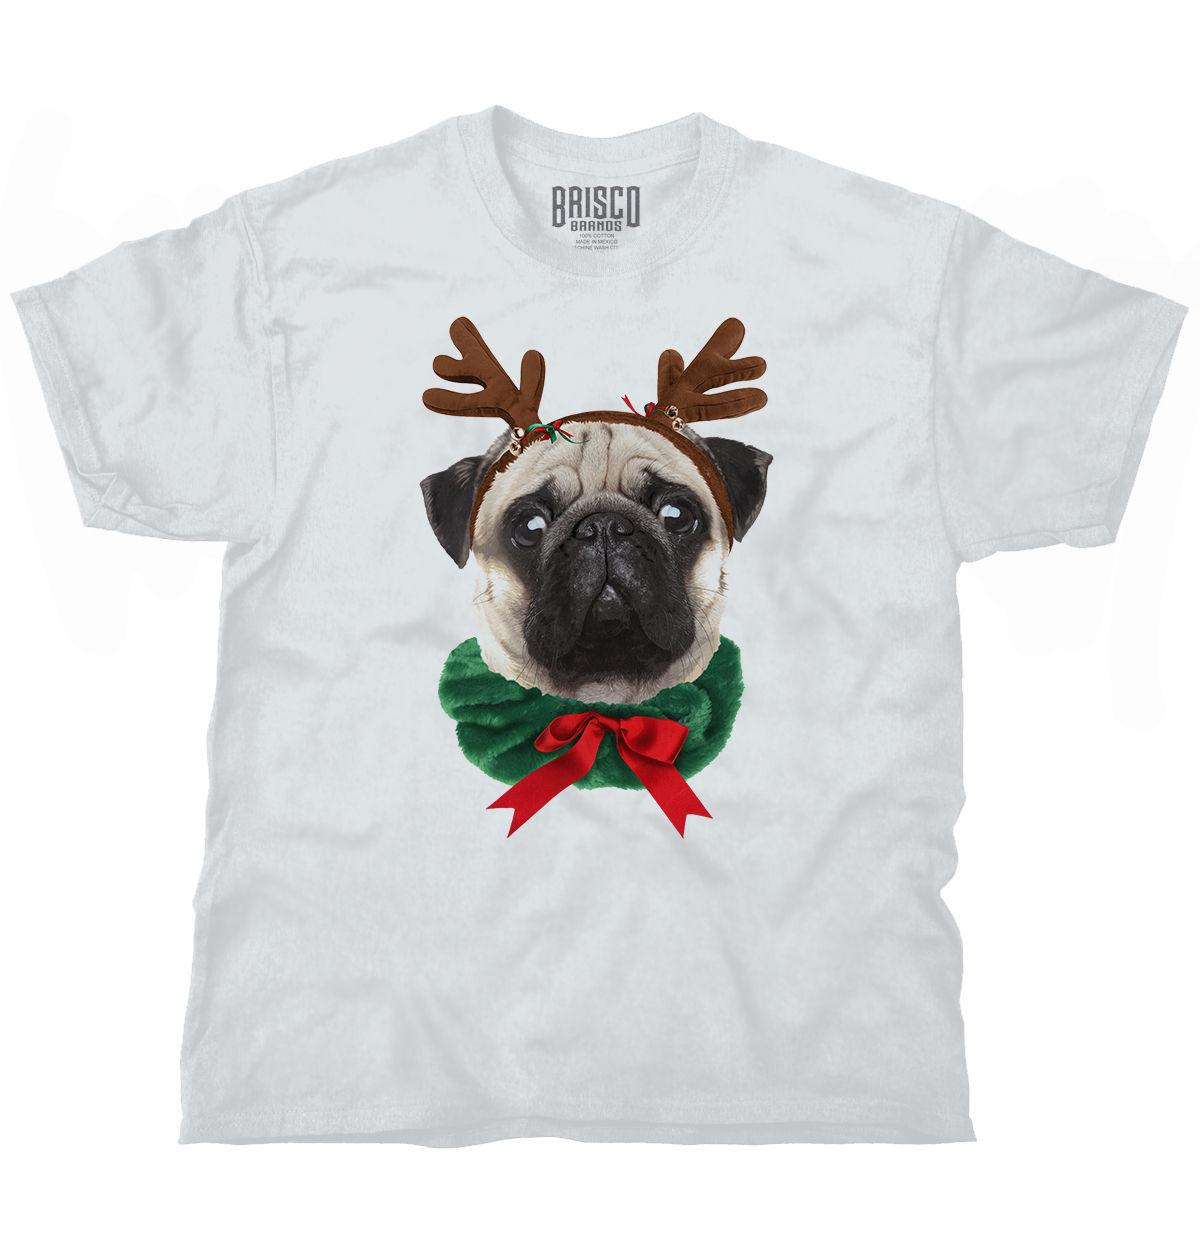 0cd759428 Pug Dog Reindeer Ugly Christmas Sweater Funny Shirt Cute Gift T Shirt Tee  Cool Casual Pride T Shirt Men Unisex New T Shirt Printers Retro Shirts From  ...